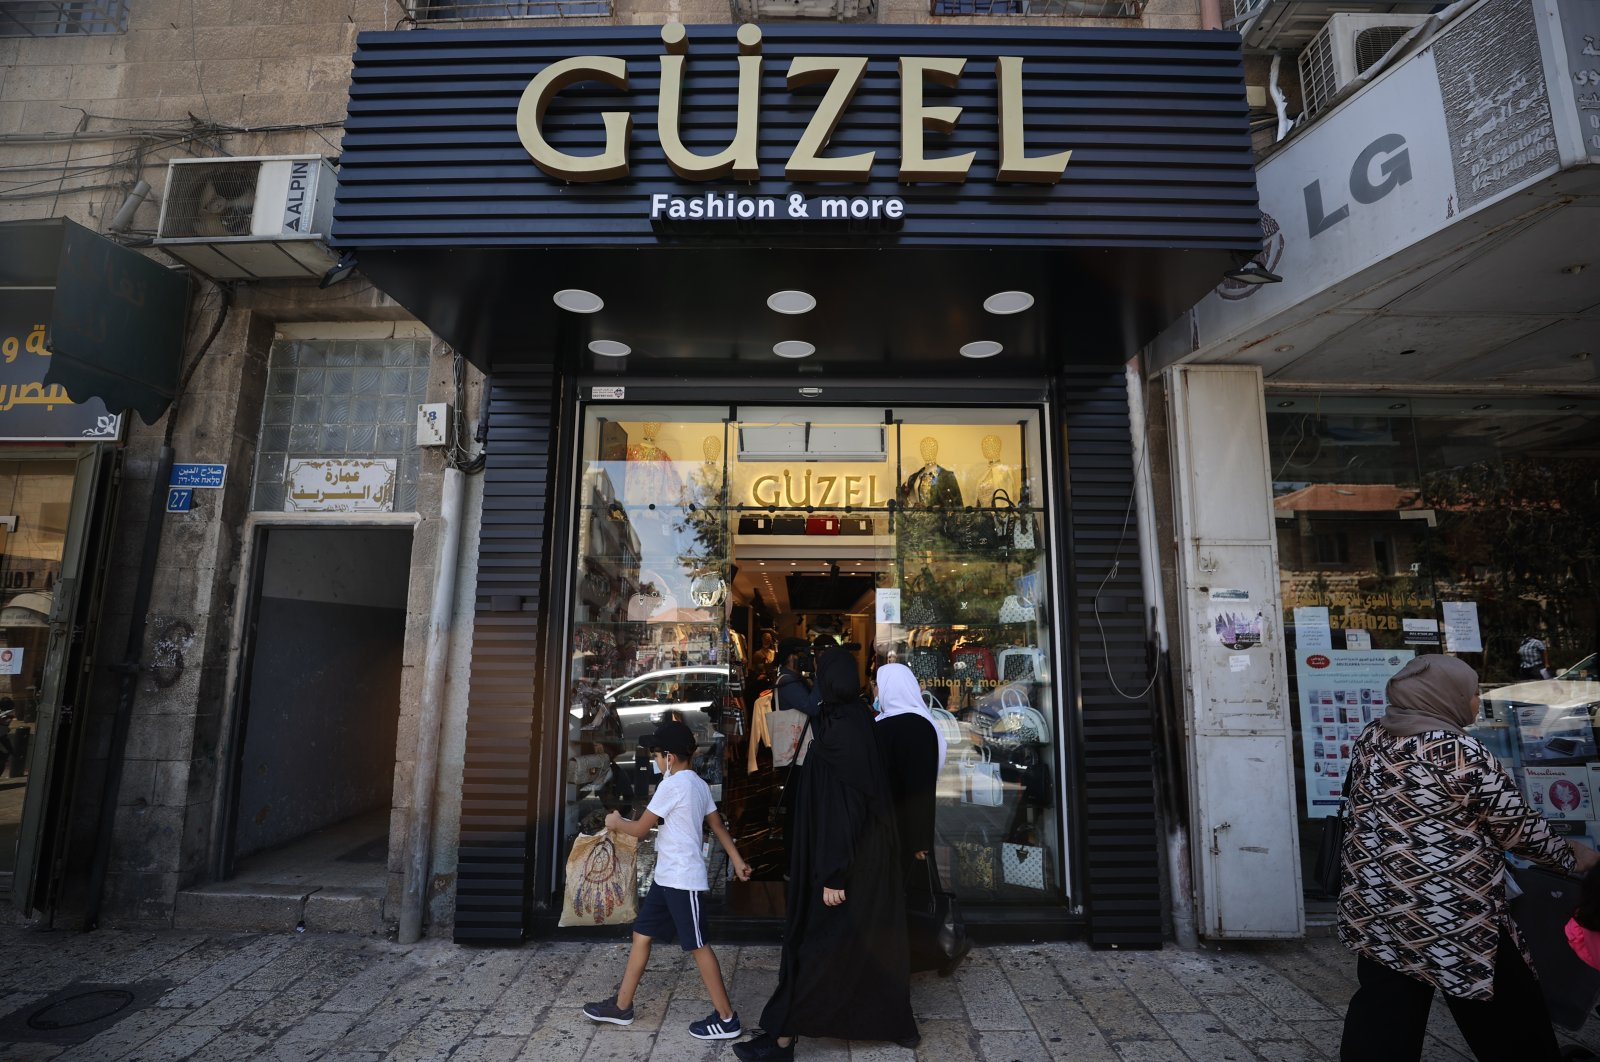 A clothing and accessories shop named Güzel (beautiful in Turkish) is seen along Salah al-Din Street in East Jerusalem, occupied Palestine, Aug. 19, 2021. (AA Photo)